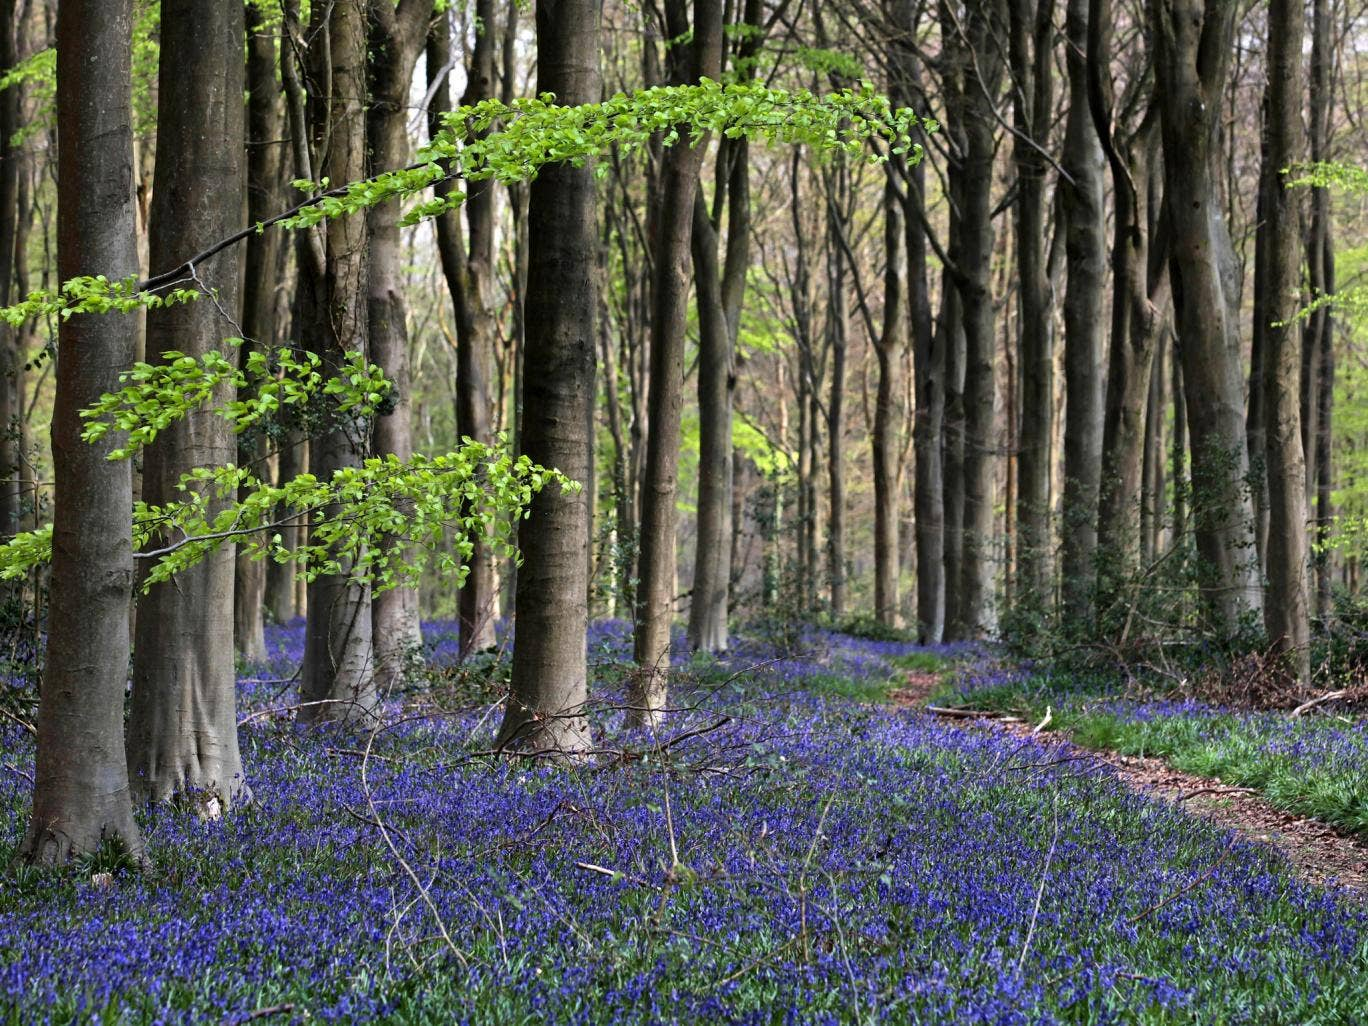 The native bluebell is being threatened by a close relative, the Spanish bluebell